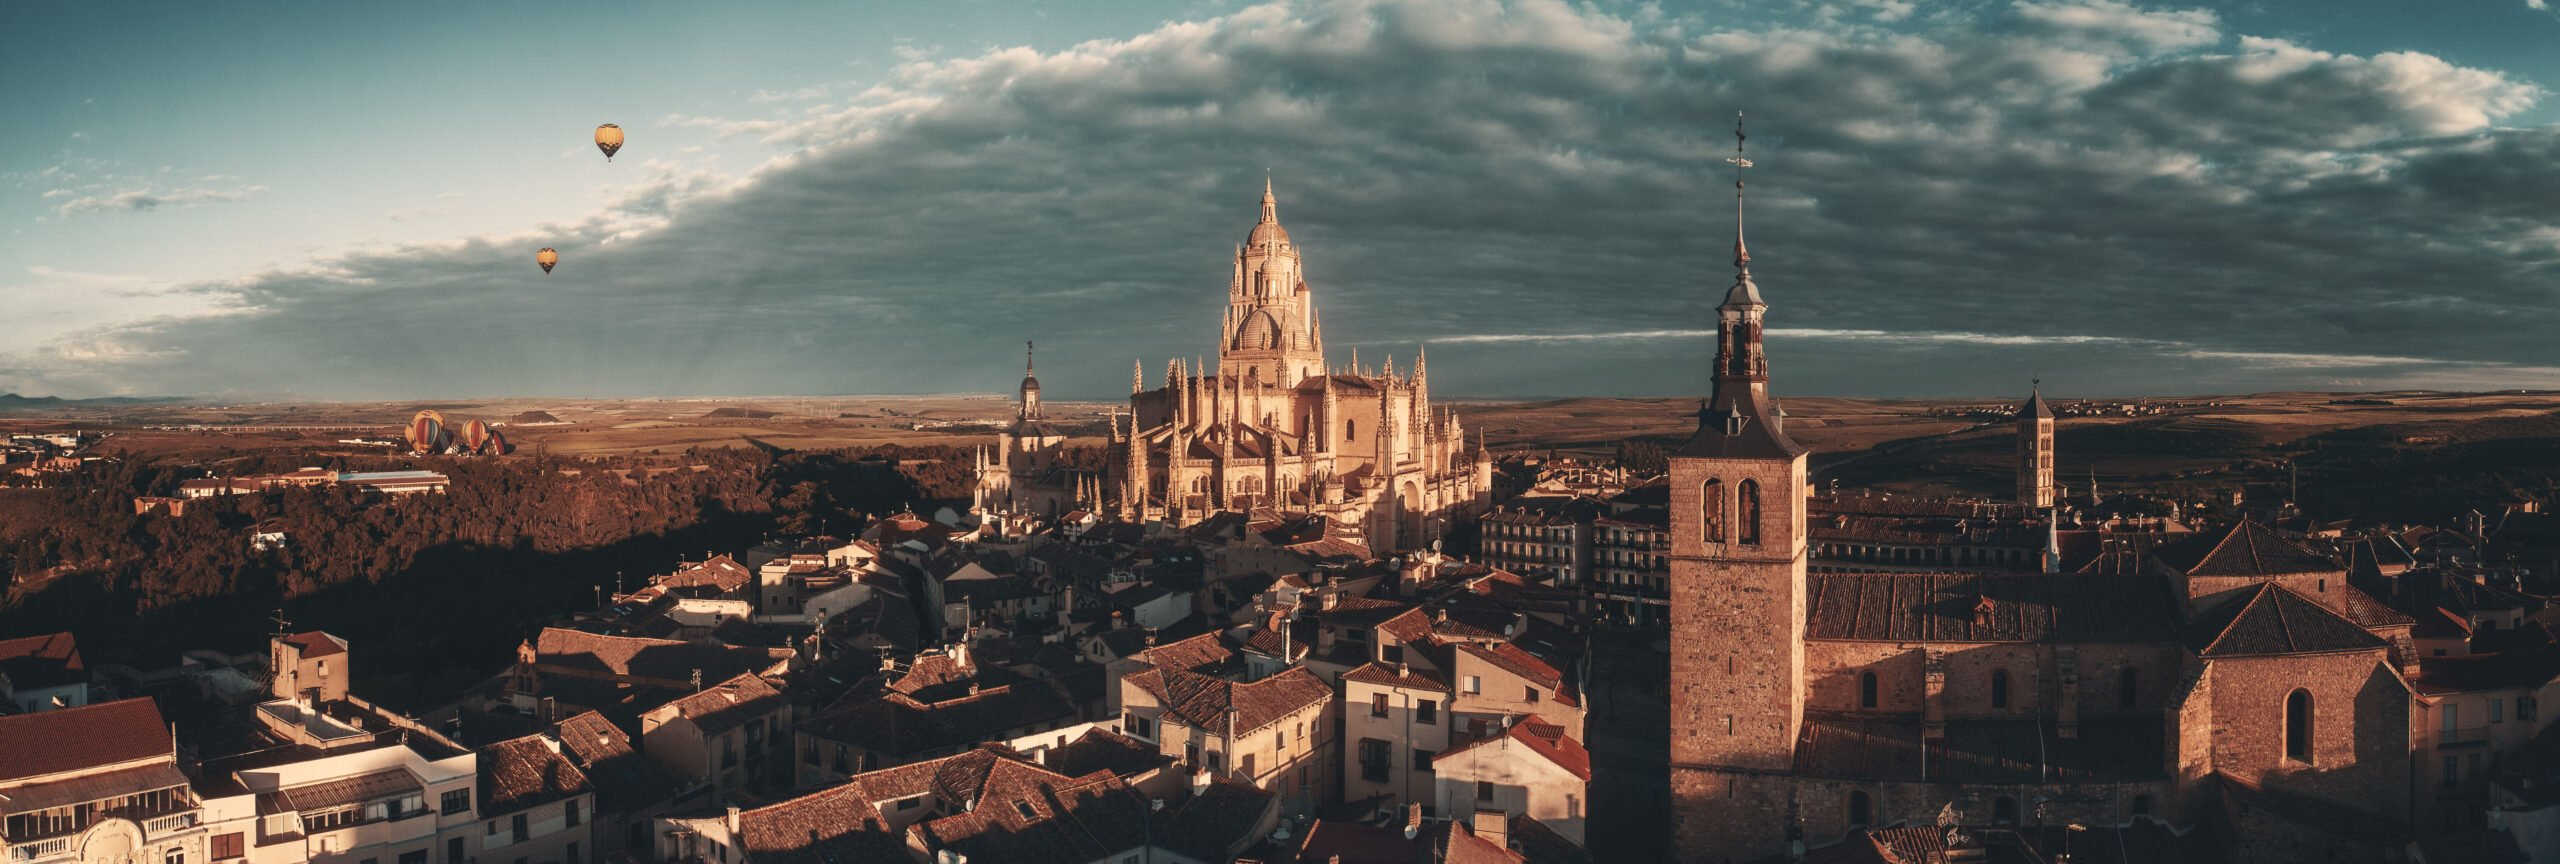 Wonderful Scenery In Our Hot Air Balloon Experience In Segovia From Madrid